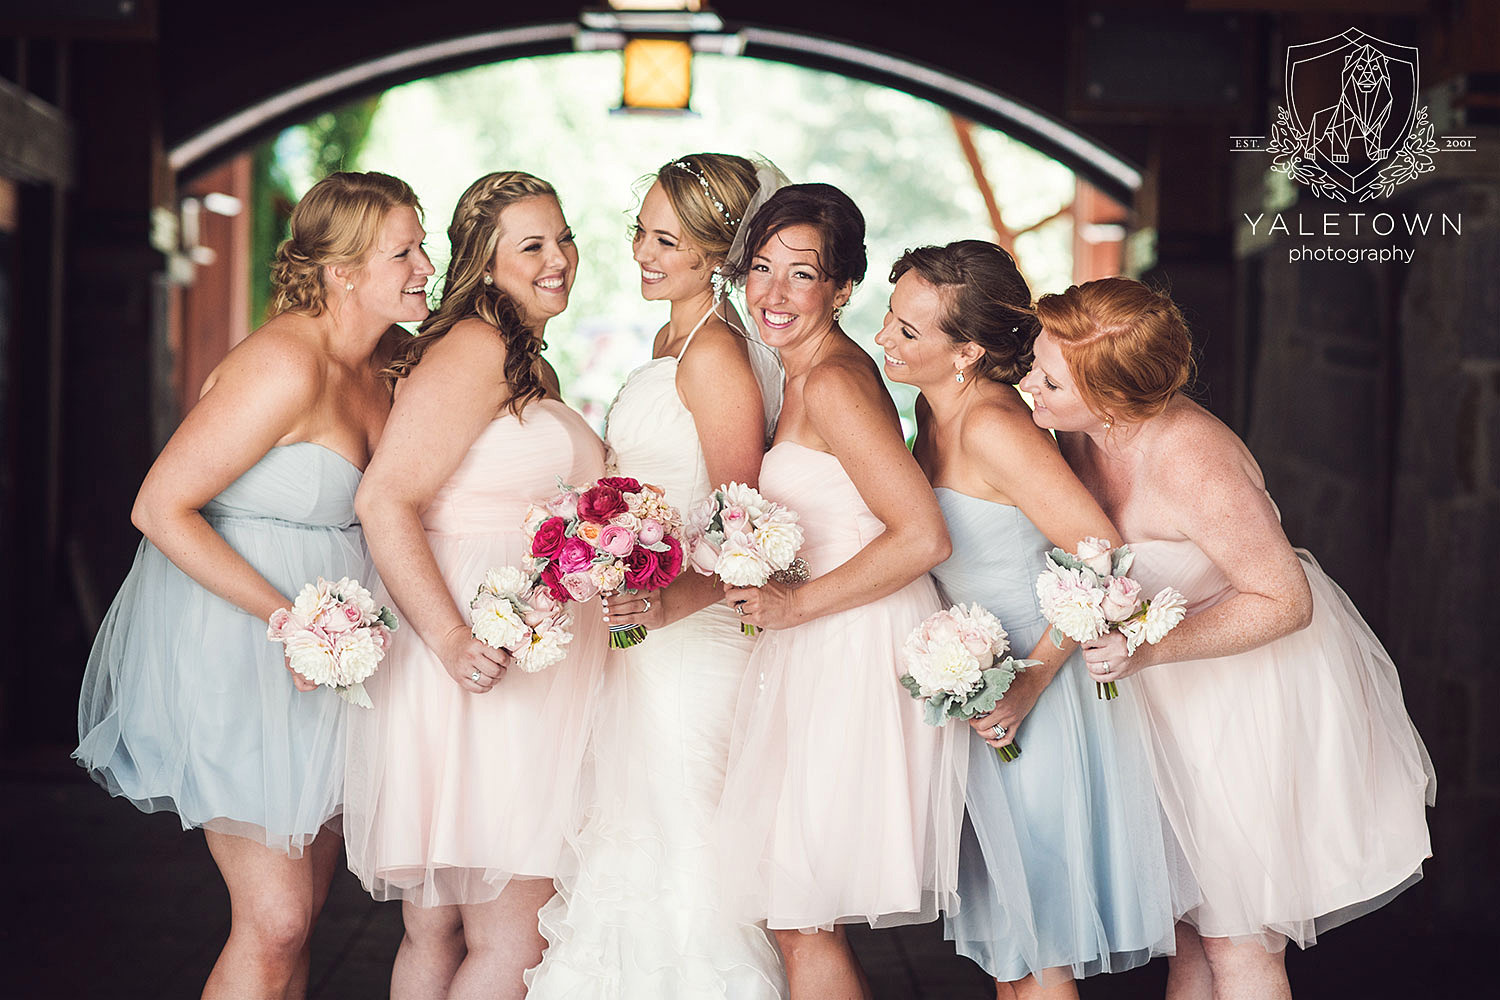 Just adored the soft pink and blue hues of the bridesmaids' dresses, which were the perfect Pantone colours for weddings this past season.